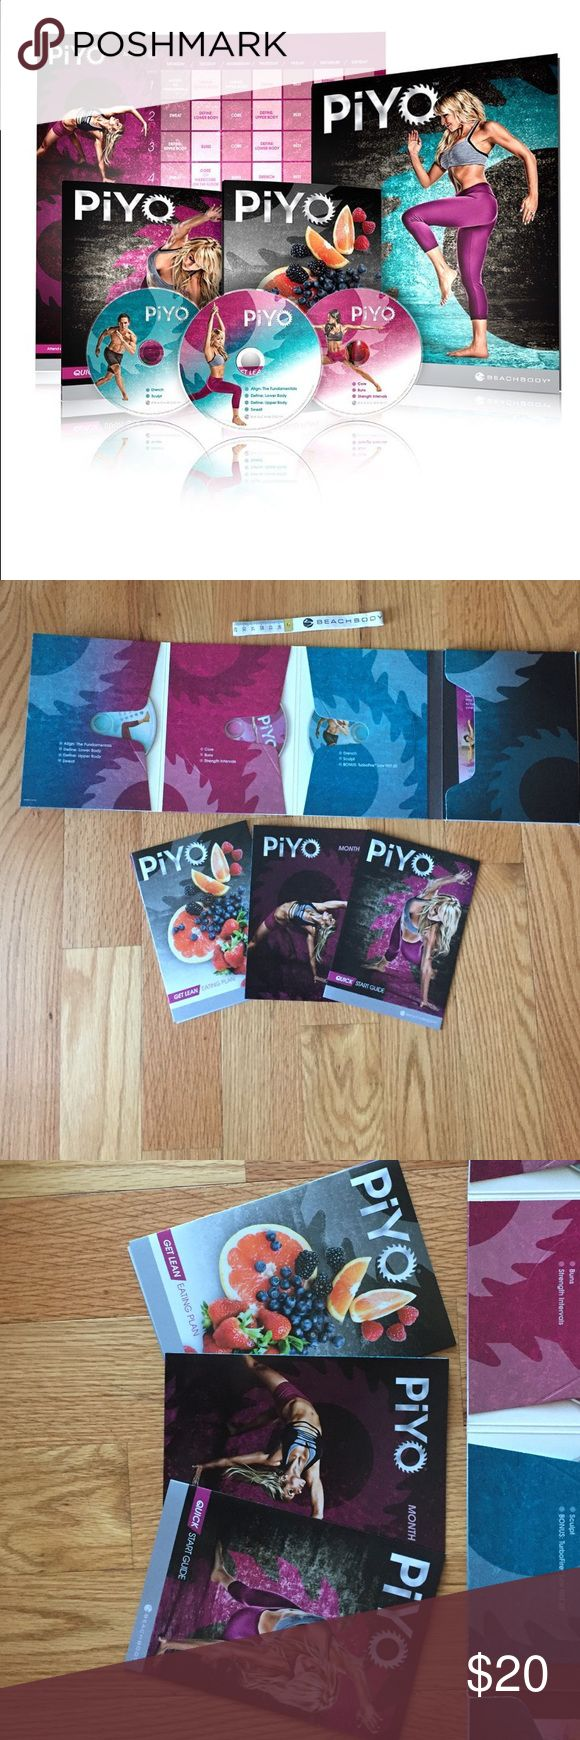 PiYo exercise DVD Never taken out of box PiYo Base kit. 3 DVD workouts, fitness tools and nutrition guide Other